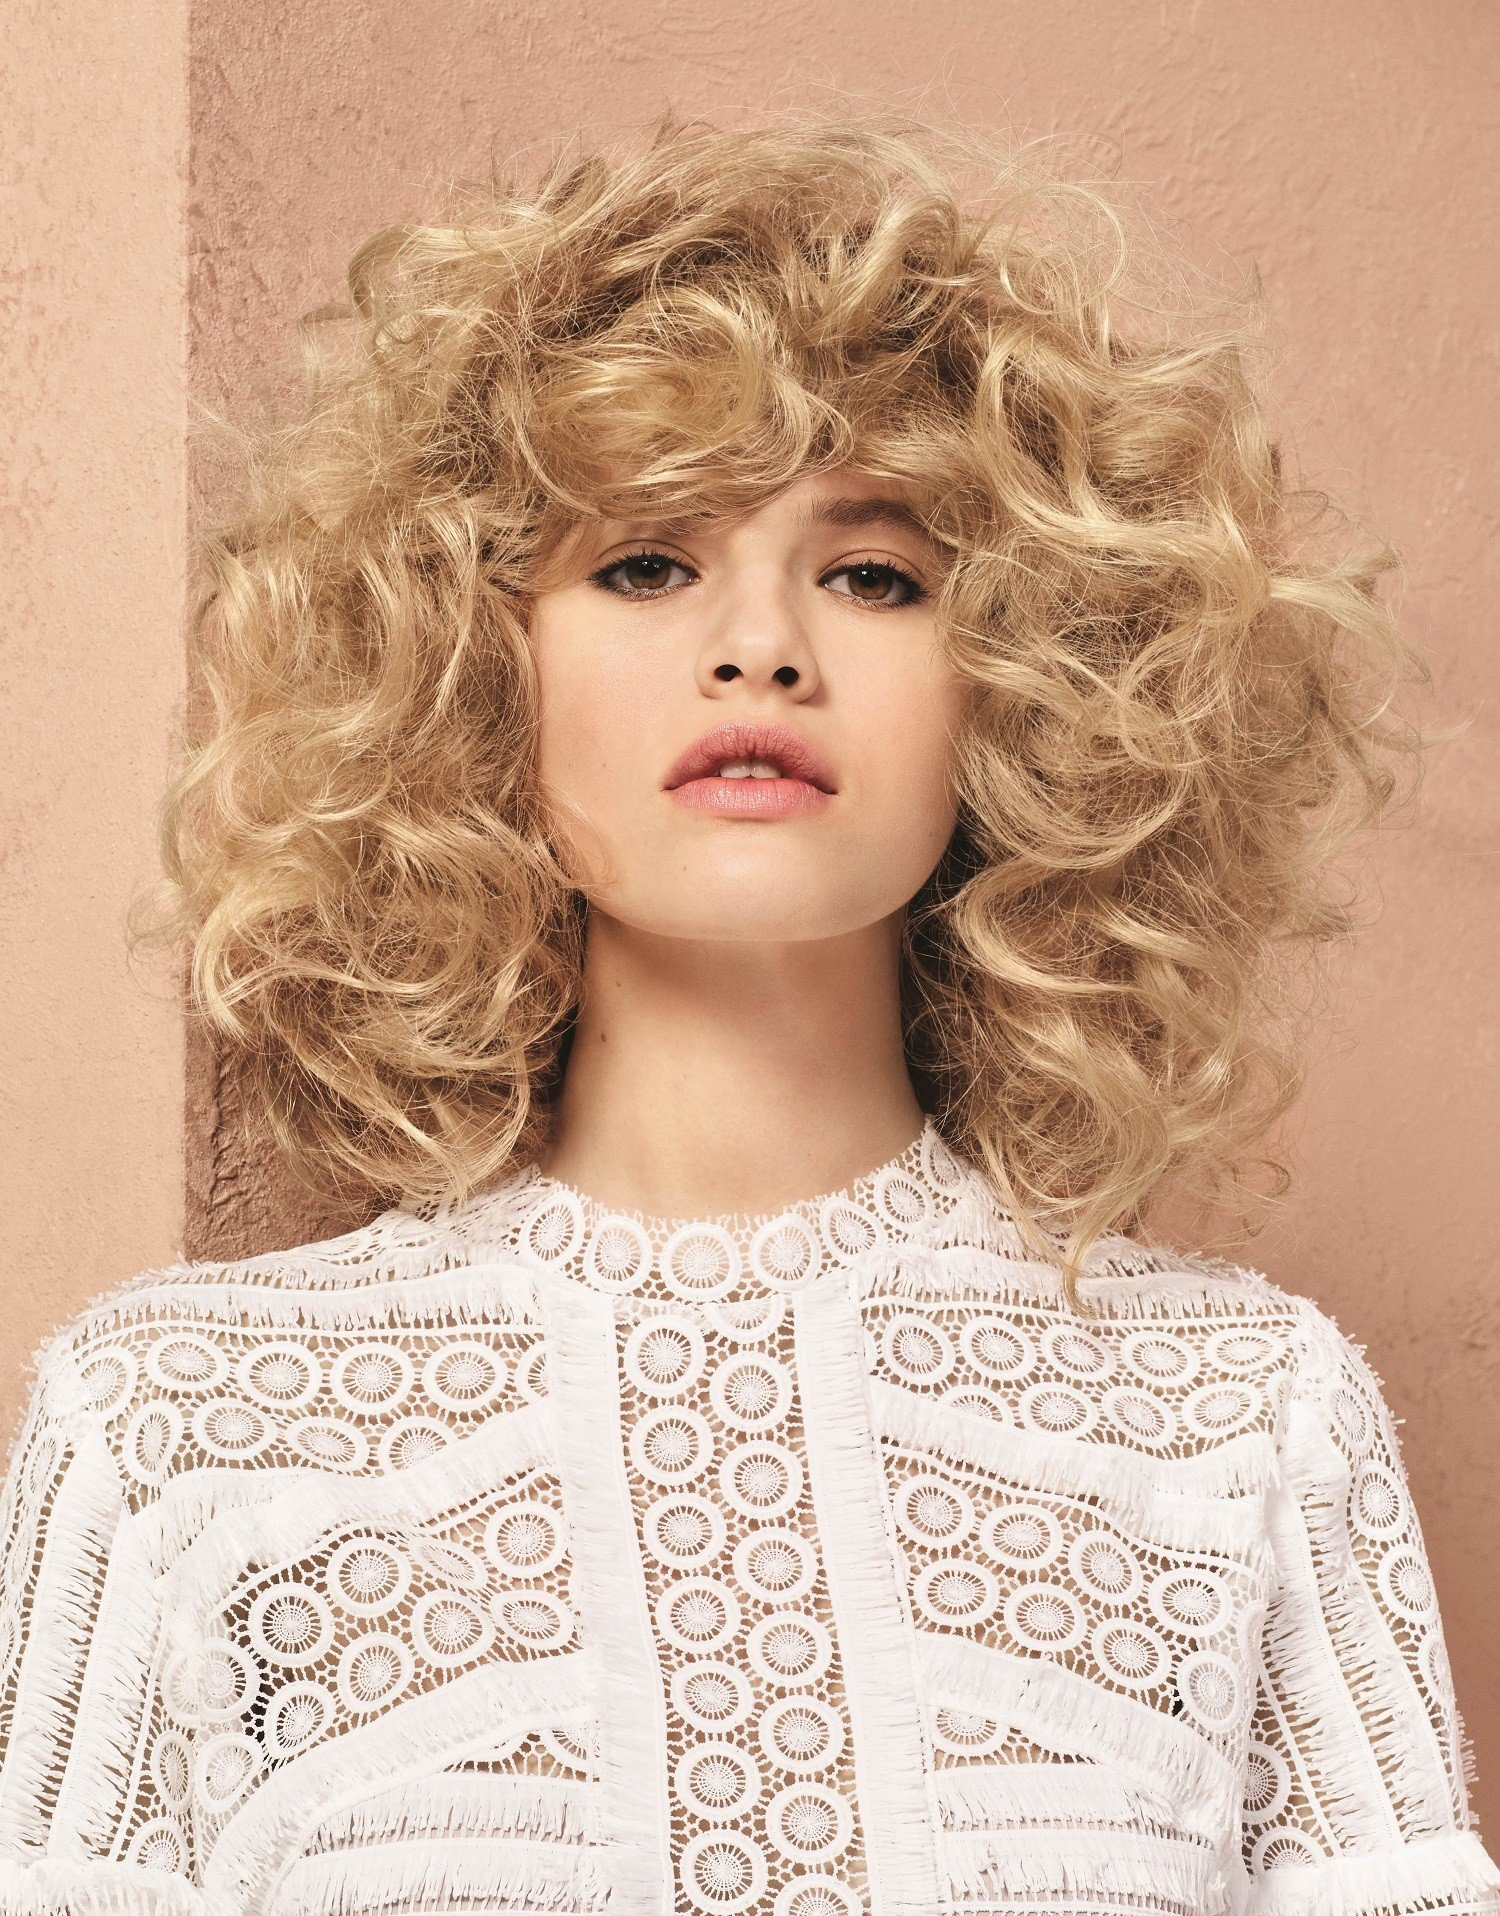 Frisur Blond Loreal Wuschelkopf Locken Frisur Blond Frisuren Magazin